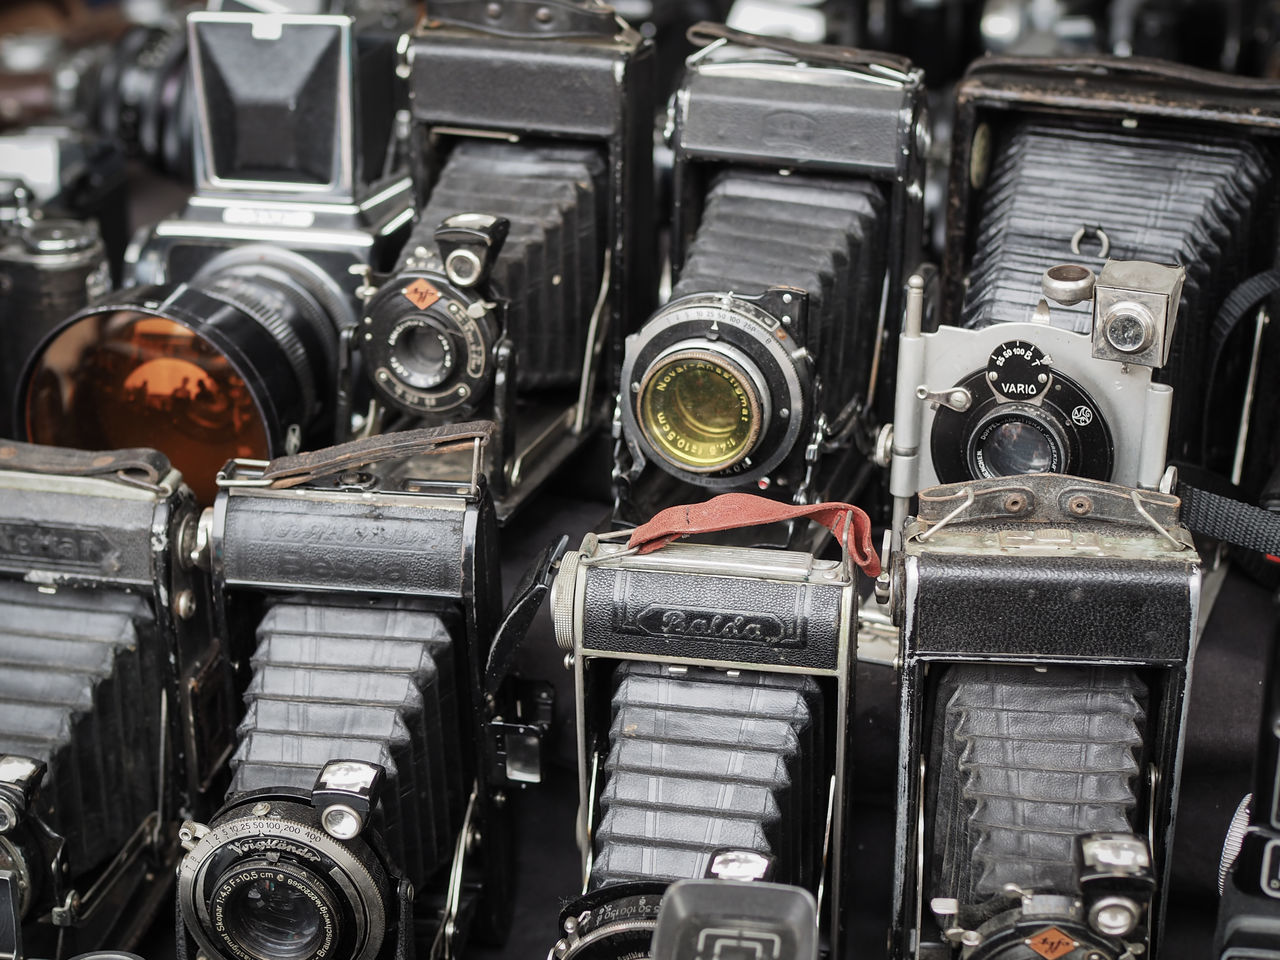 Abundance Antique Arrangement Backgrounds Cameras Close-up Day Equipment Fleemarket Fleemarket Bargains Full Frame In A Row Large Group Of Objects Machine Part Machinery No People Old Old-fashioned Repetition Retro Styled Stationary Still Life The Past Variation Vintage